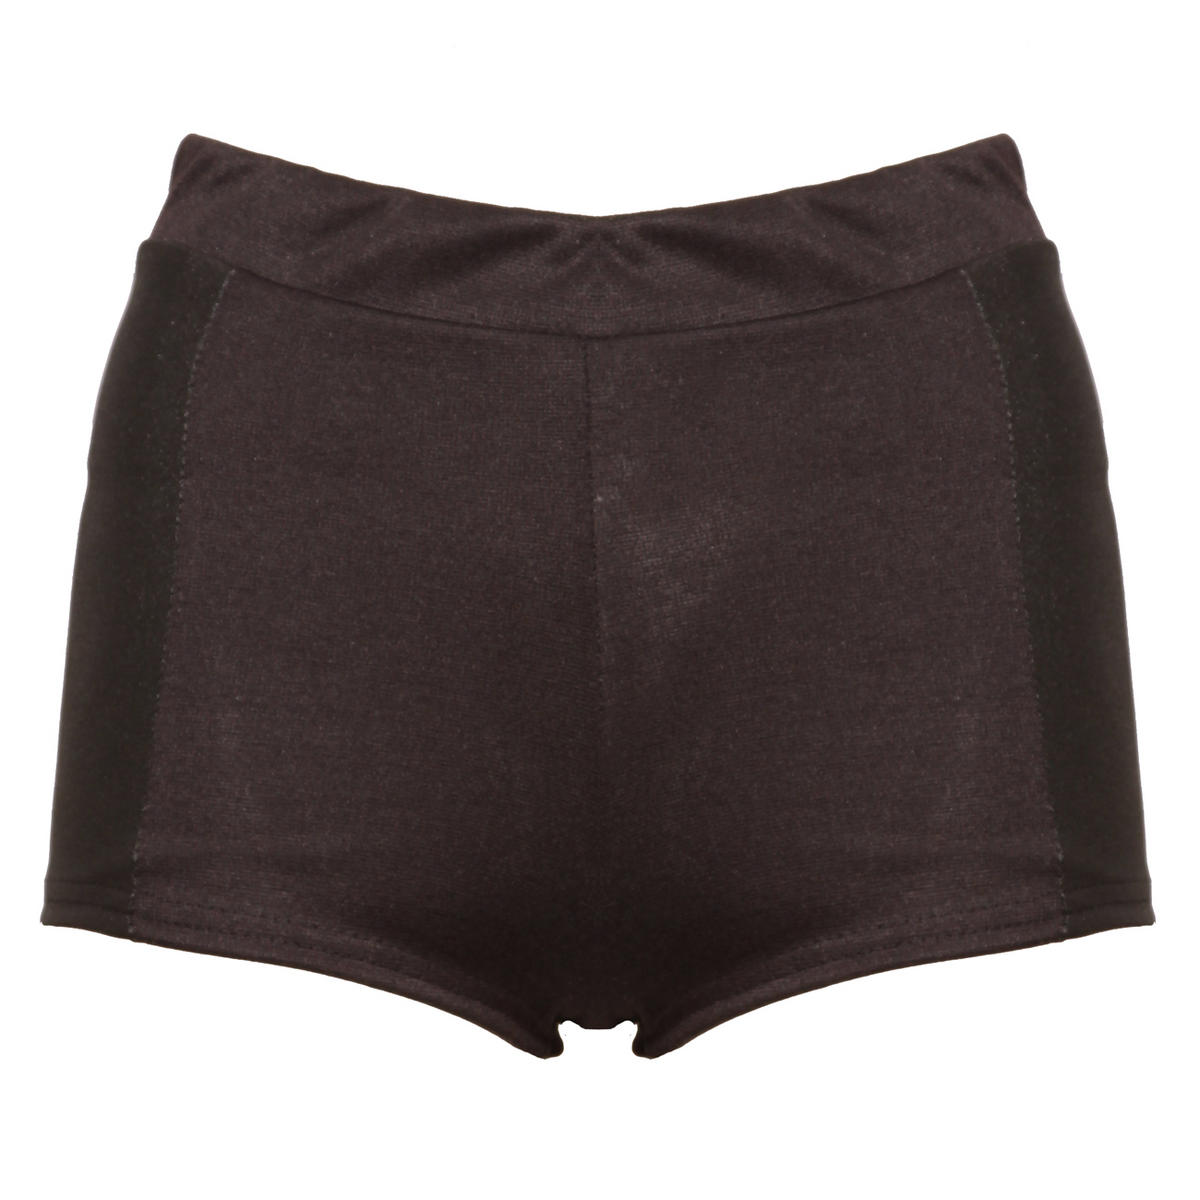 PU Panel Knicker Hot Pants Preview